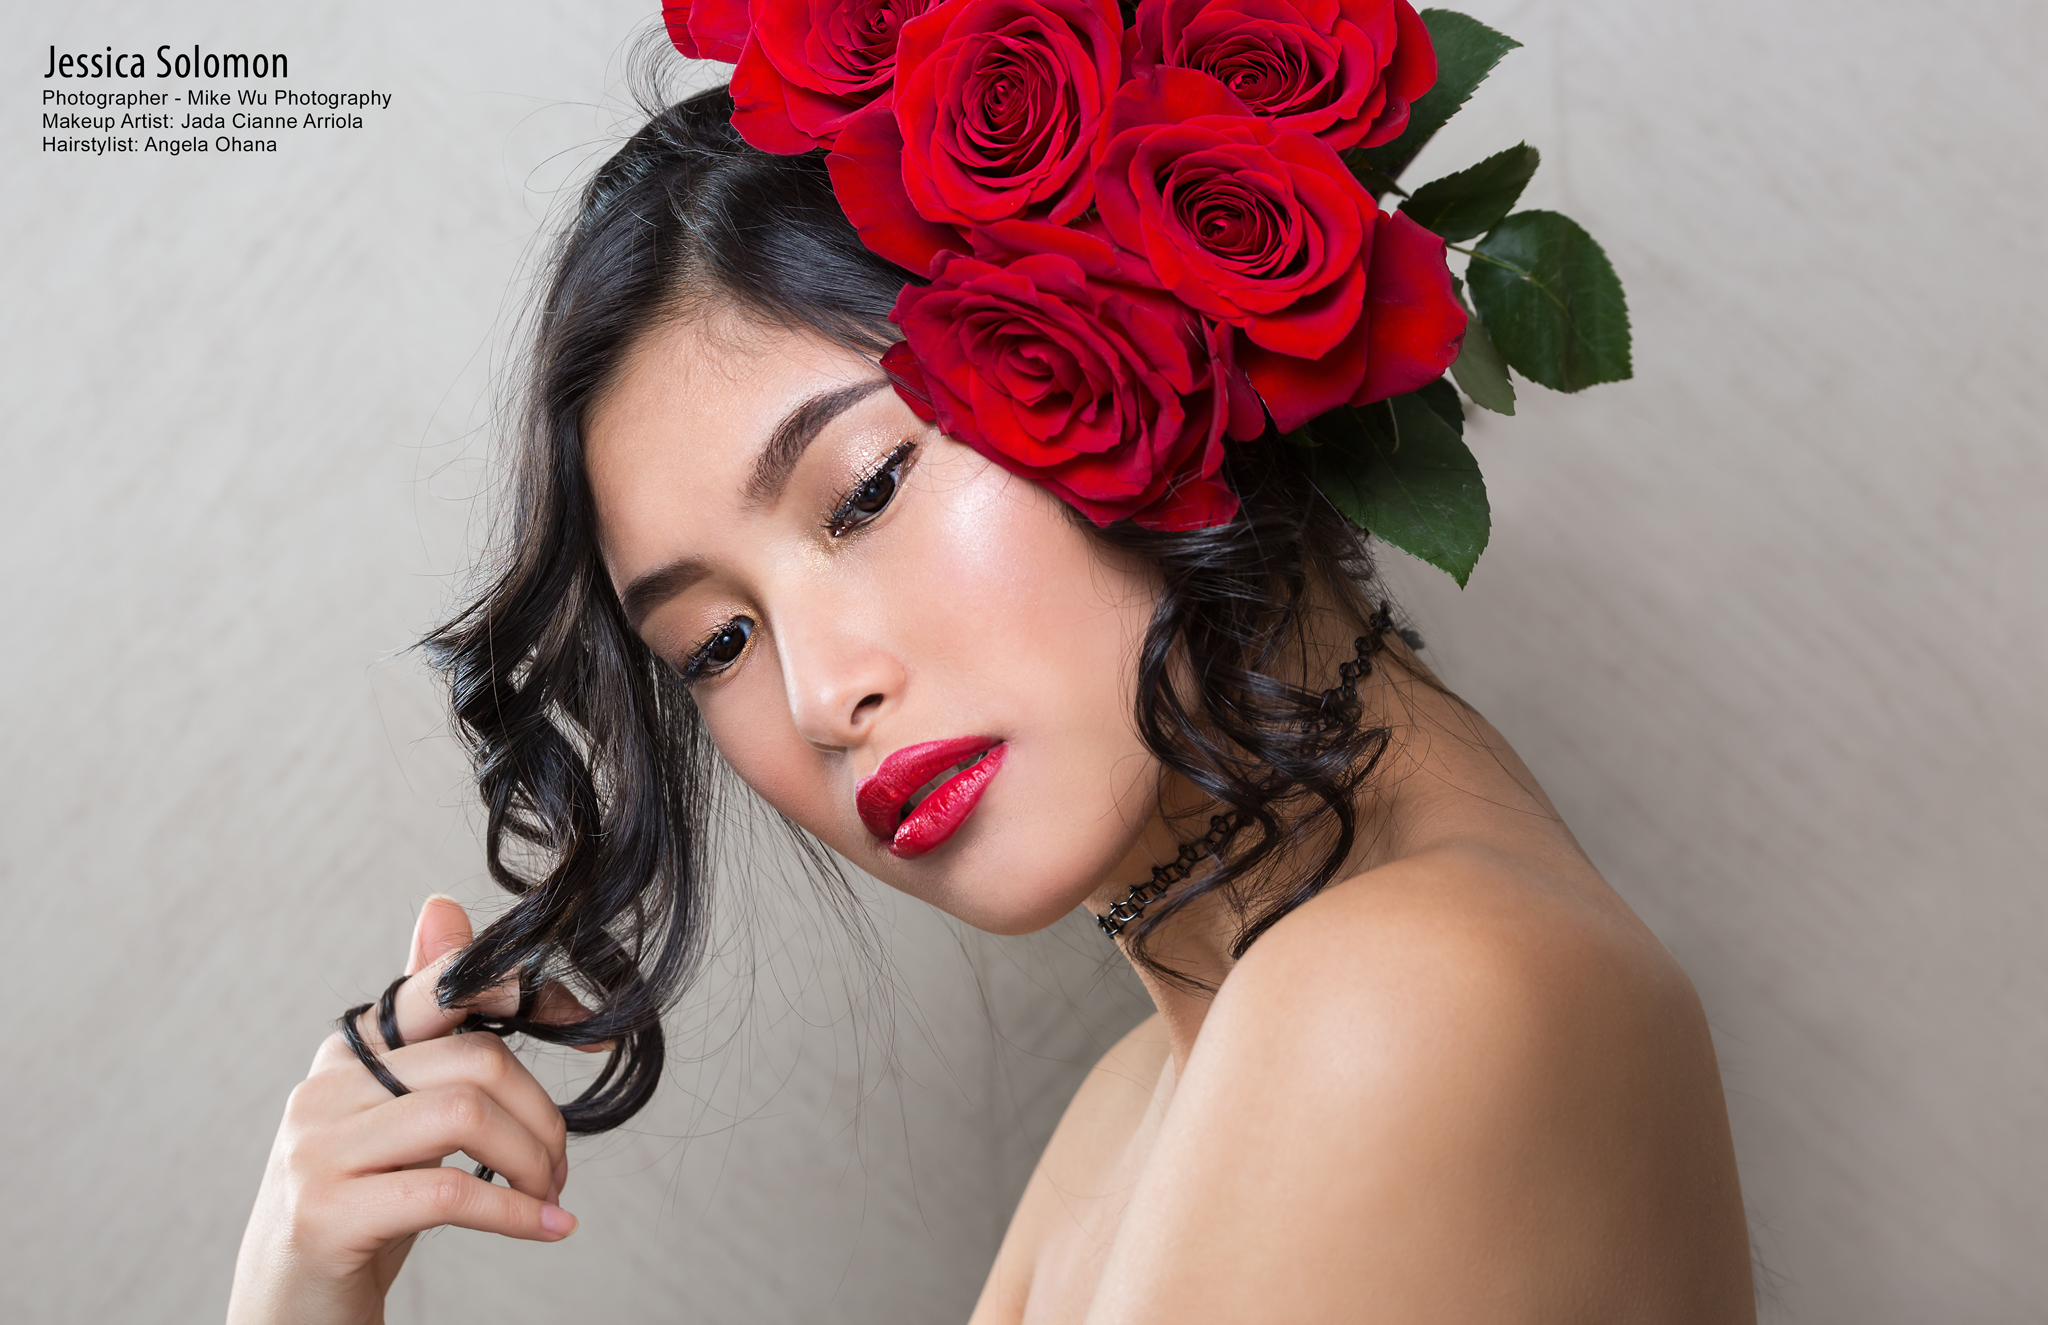 model, surreal beauty magazine, publication, flowers, bouquet, roses, beauty, curls